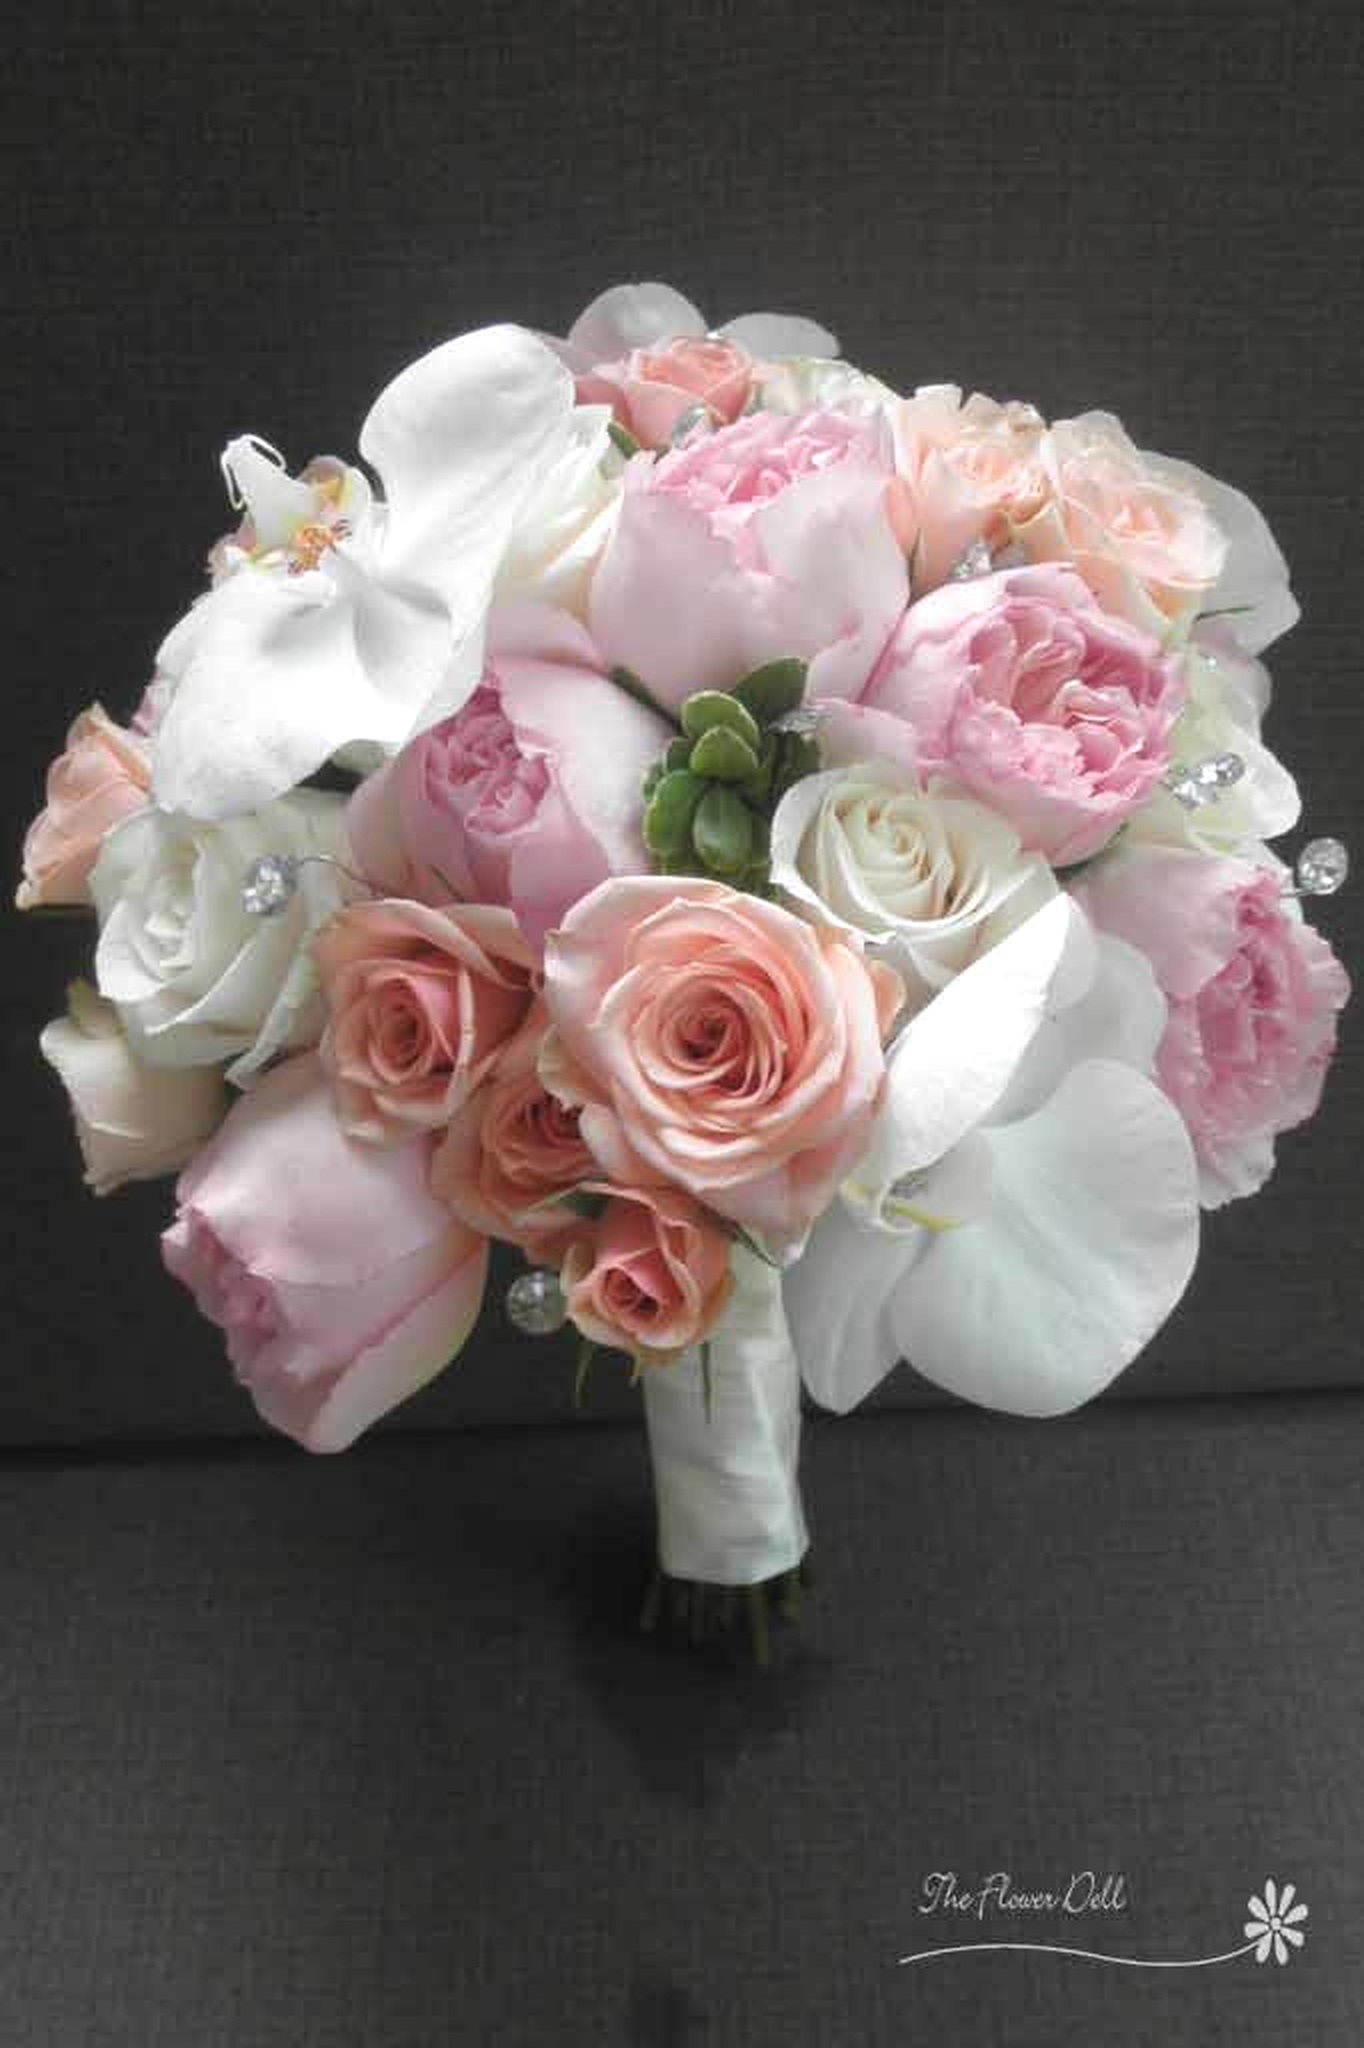 Wedding-bouquet-roses-and-Phalaenopsis-orchids.jpg